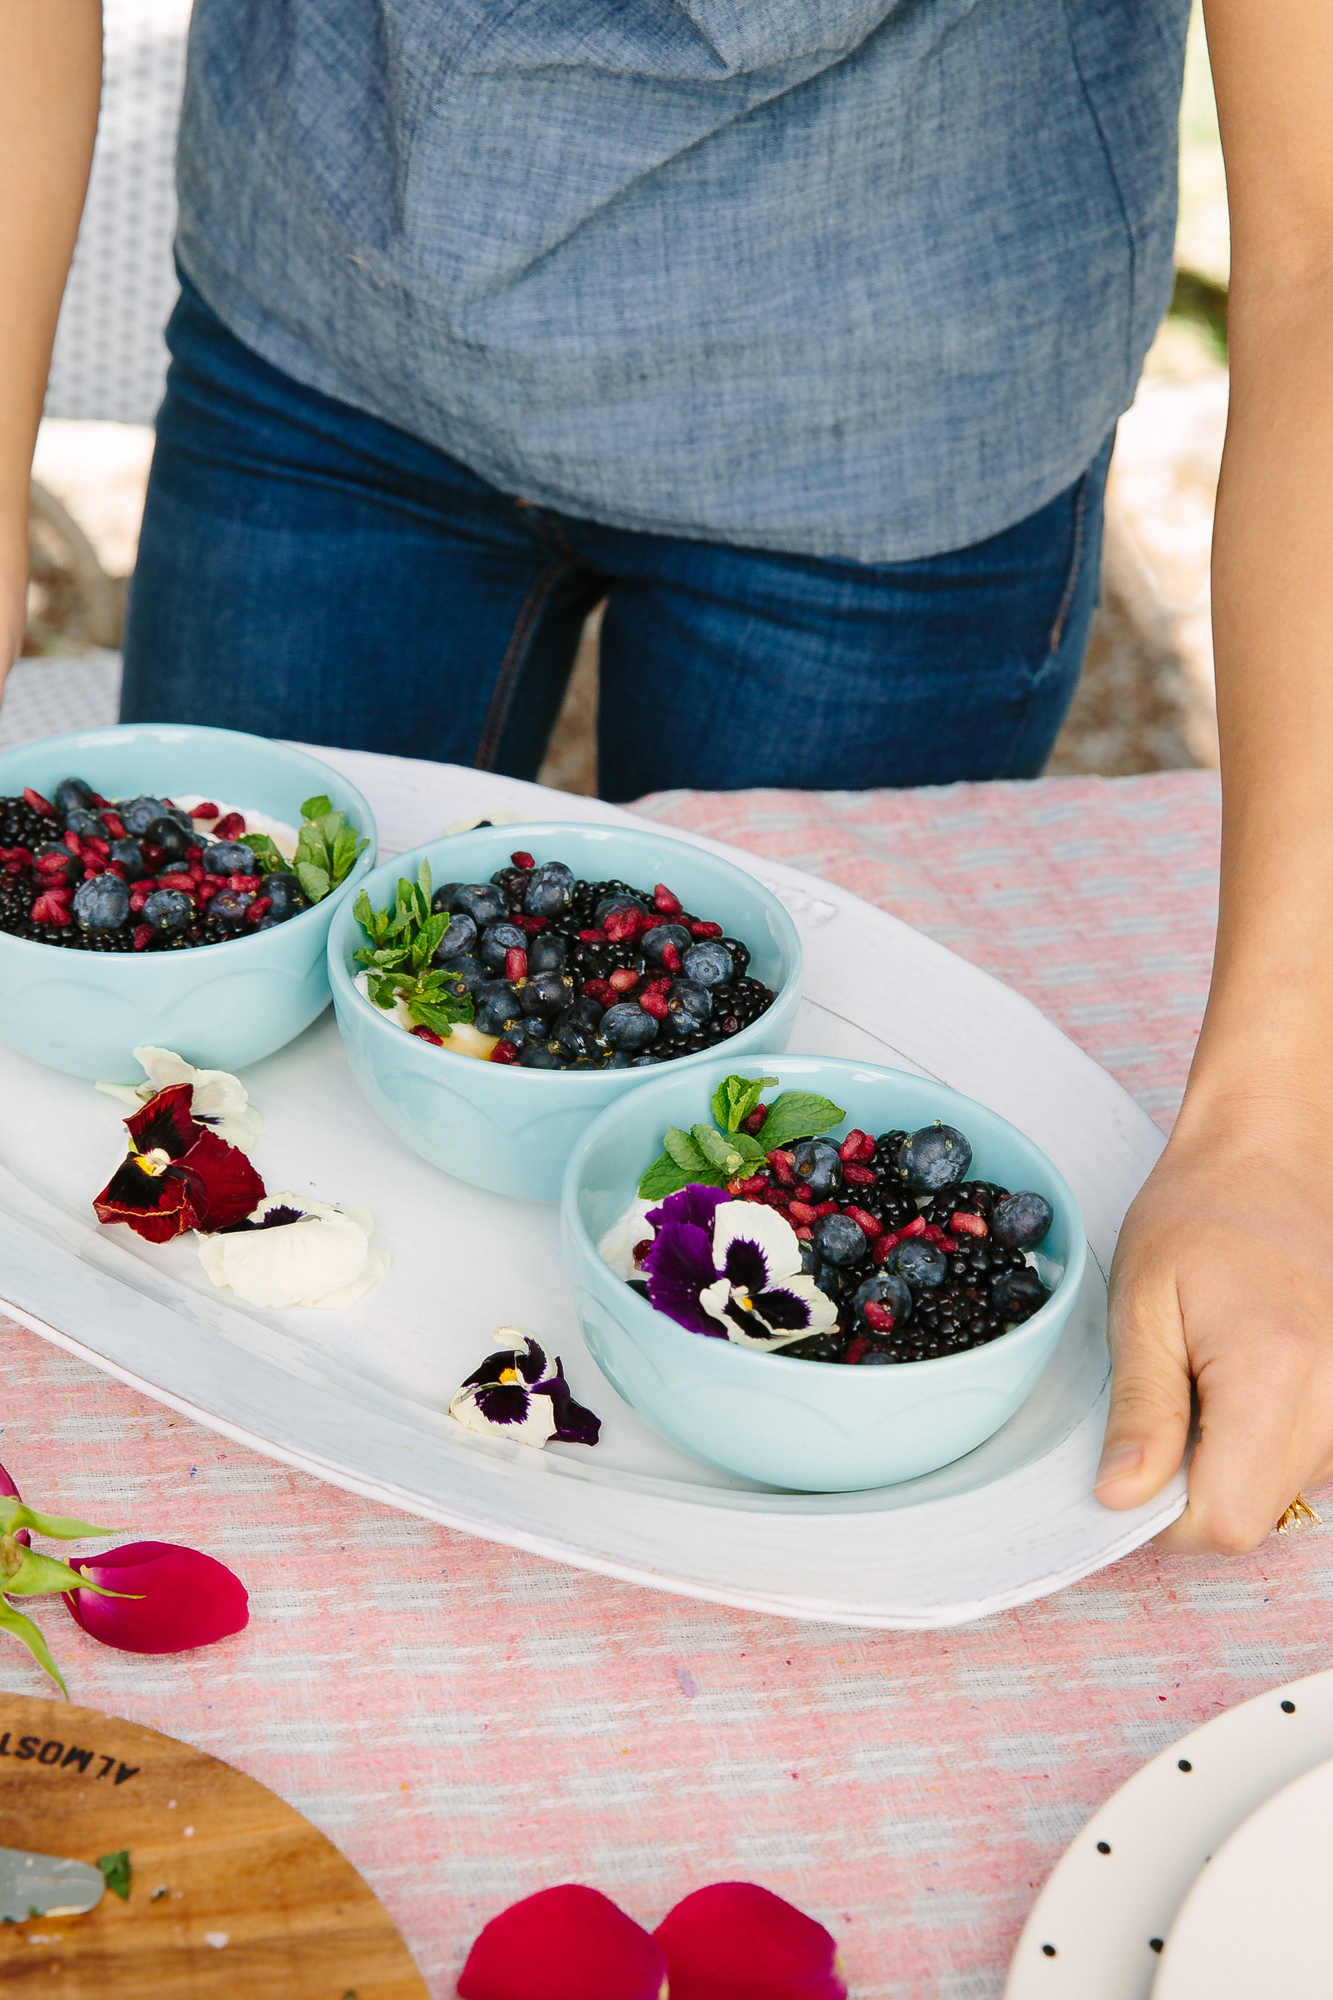 springtime yogurt bowls with berries & pomegranate seeds